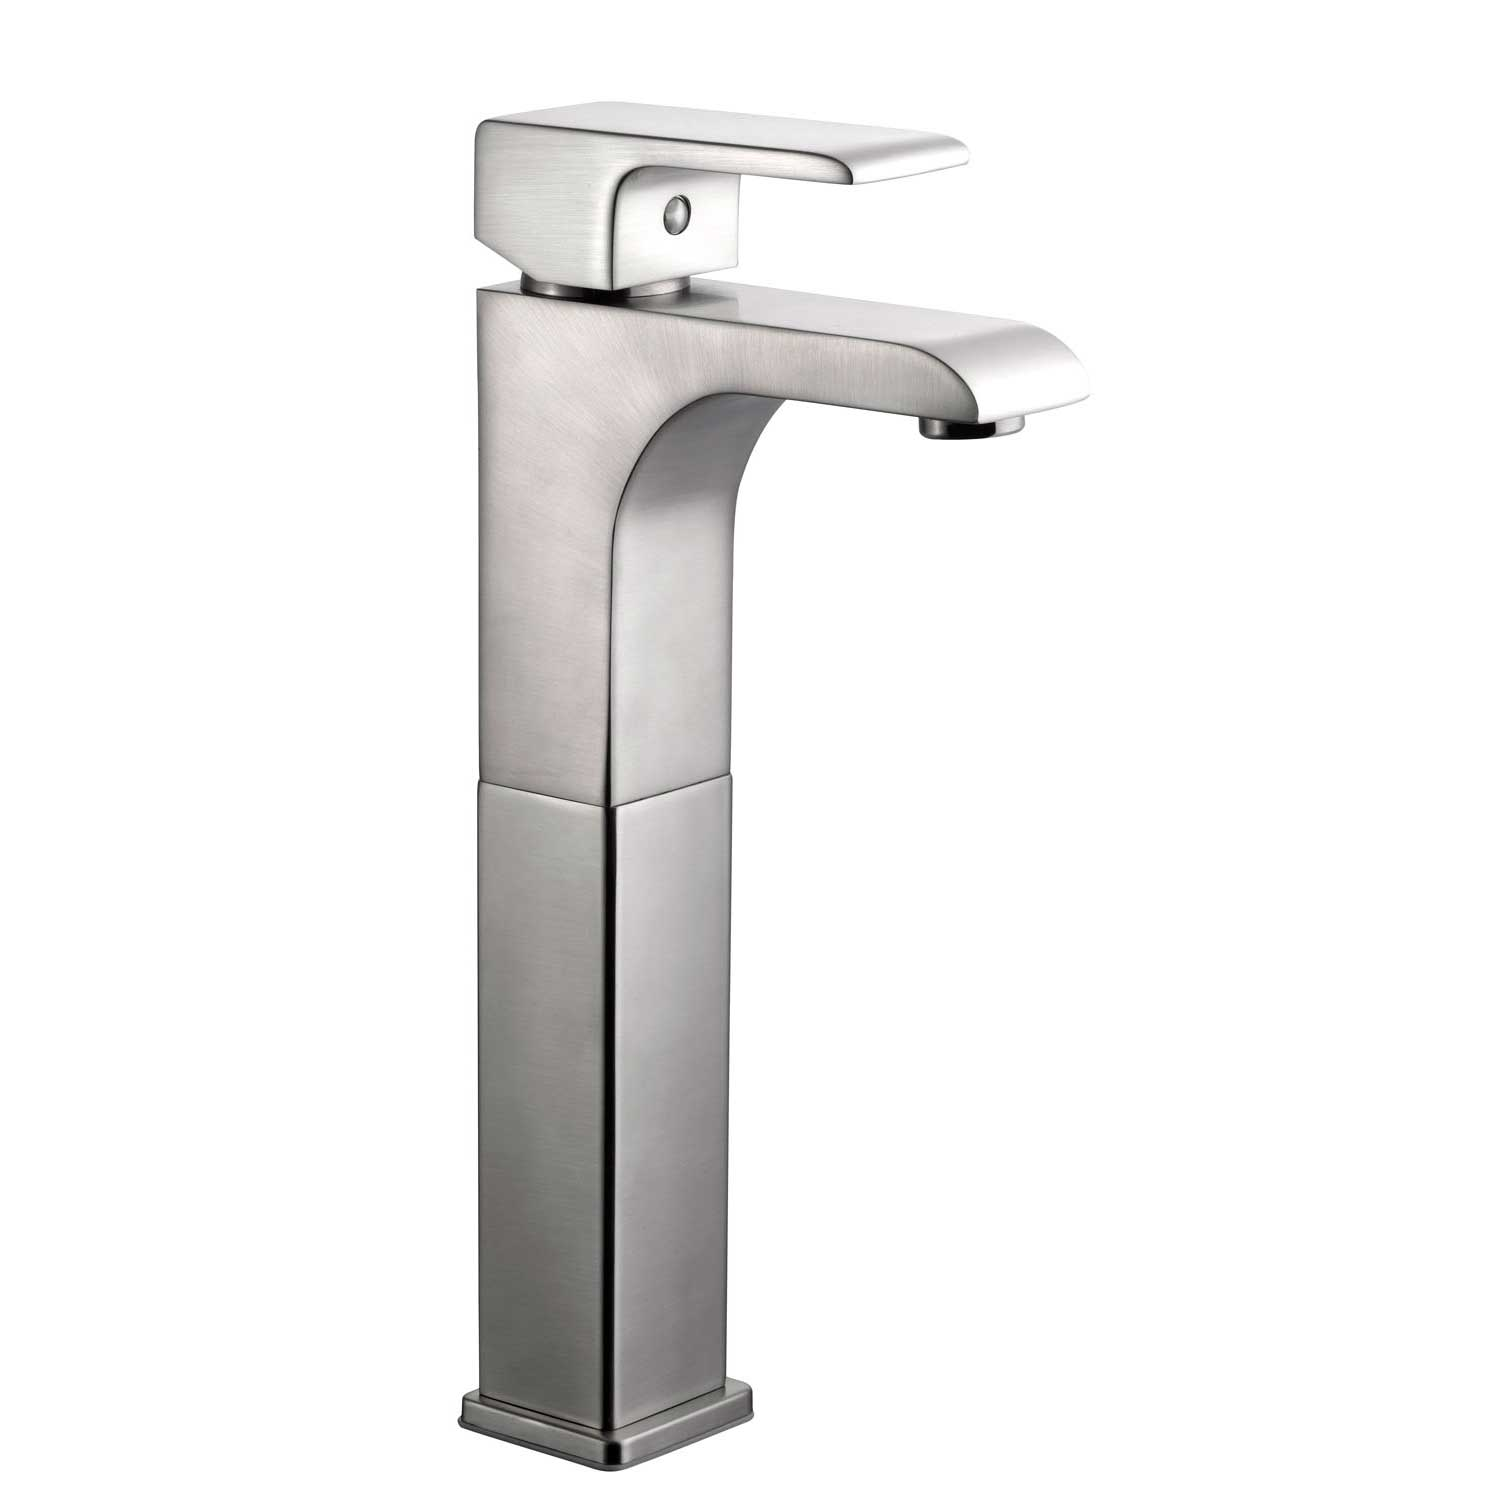 Design House Lyss Vessell Lavatory Faucet, Satin Nickel - 546754